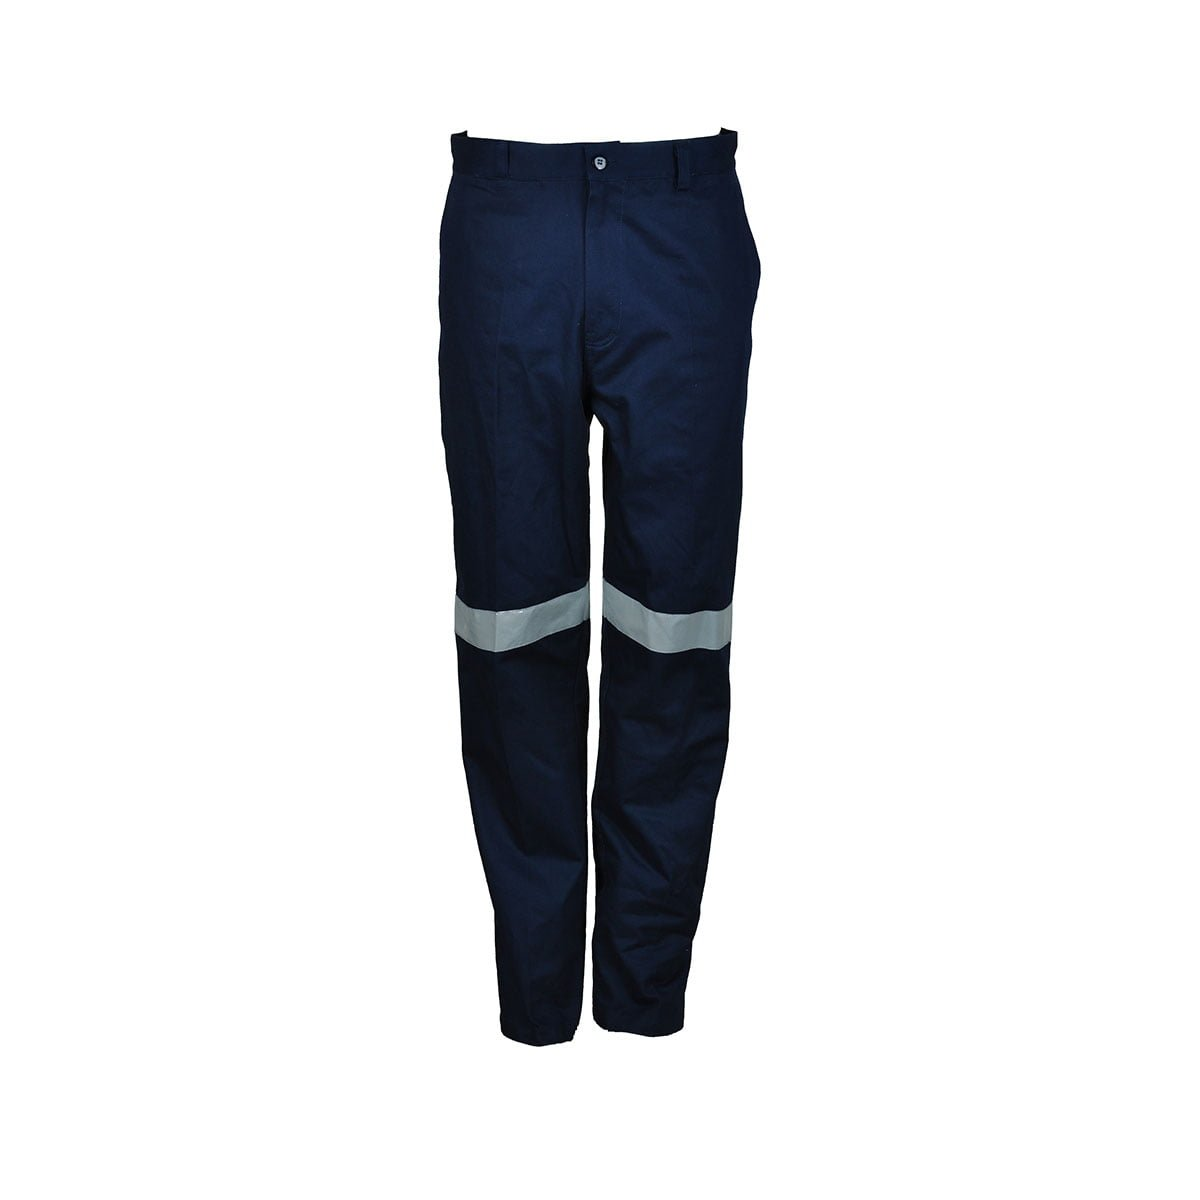 DRILL WORK PANTS WITH TAPE